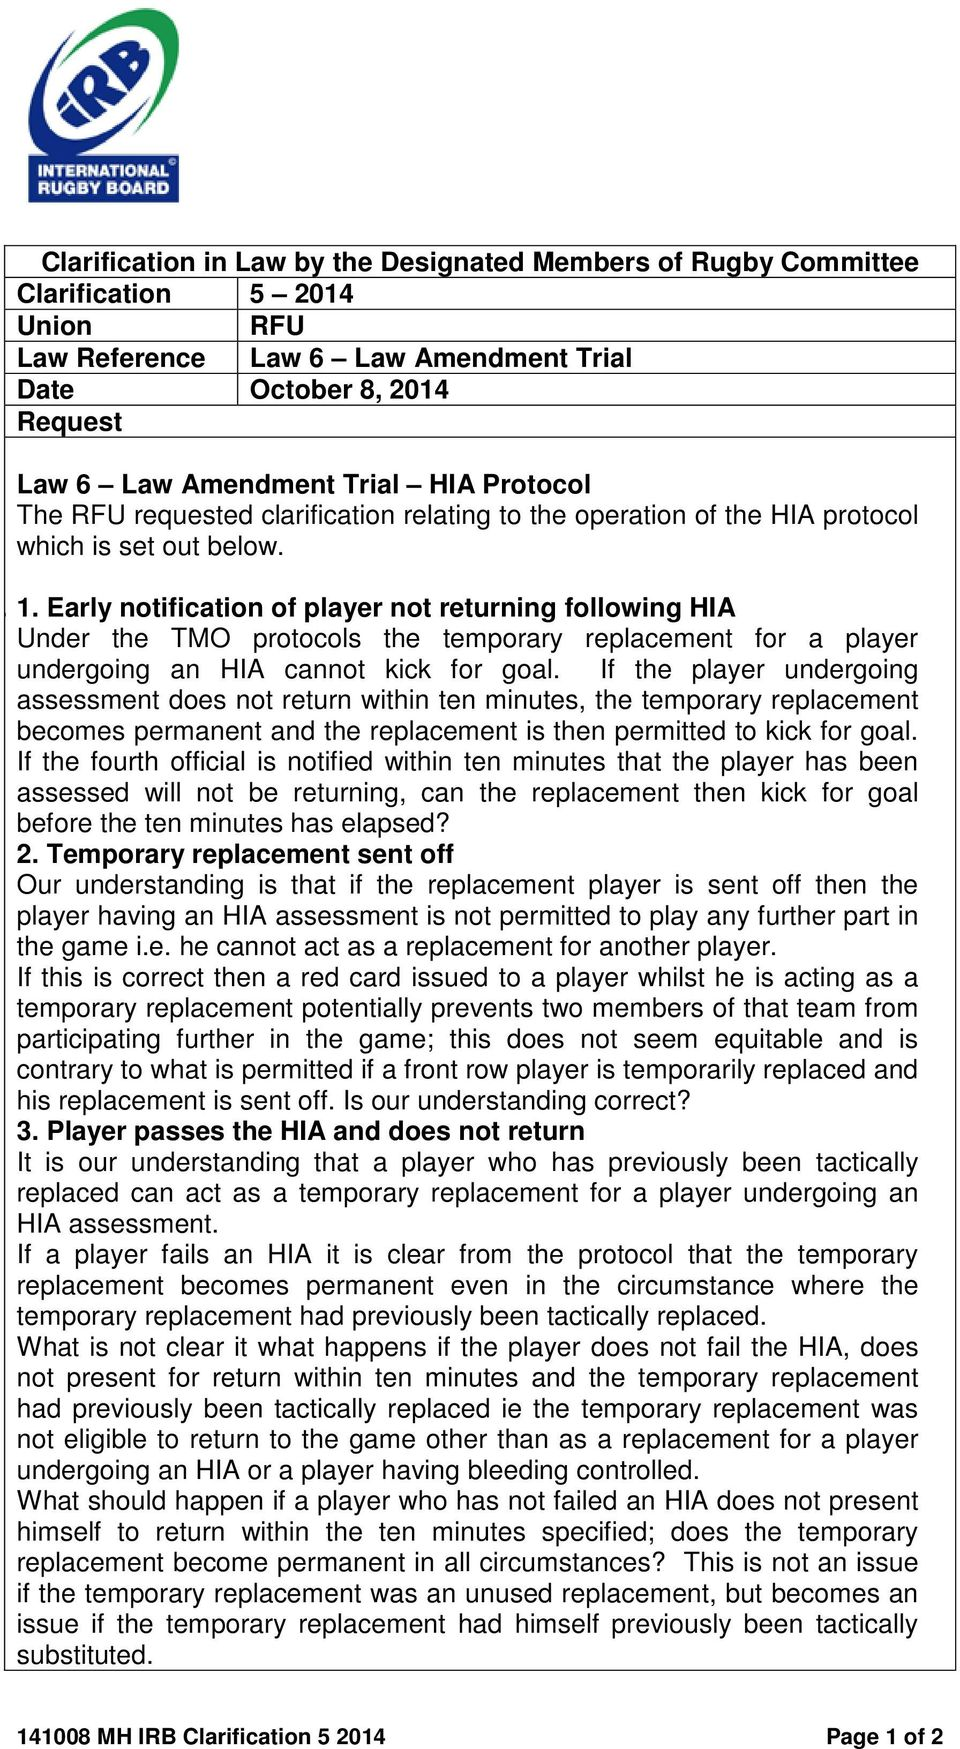 Early notification of player not returning following HIA Under the TMO protocols the temporary replacement for a player undergoing an HIA cannot kick for goal.